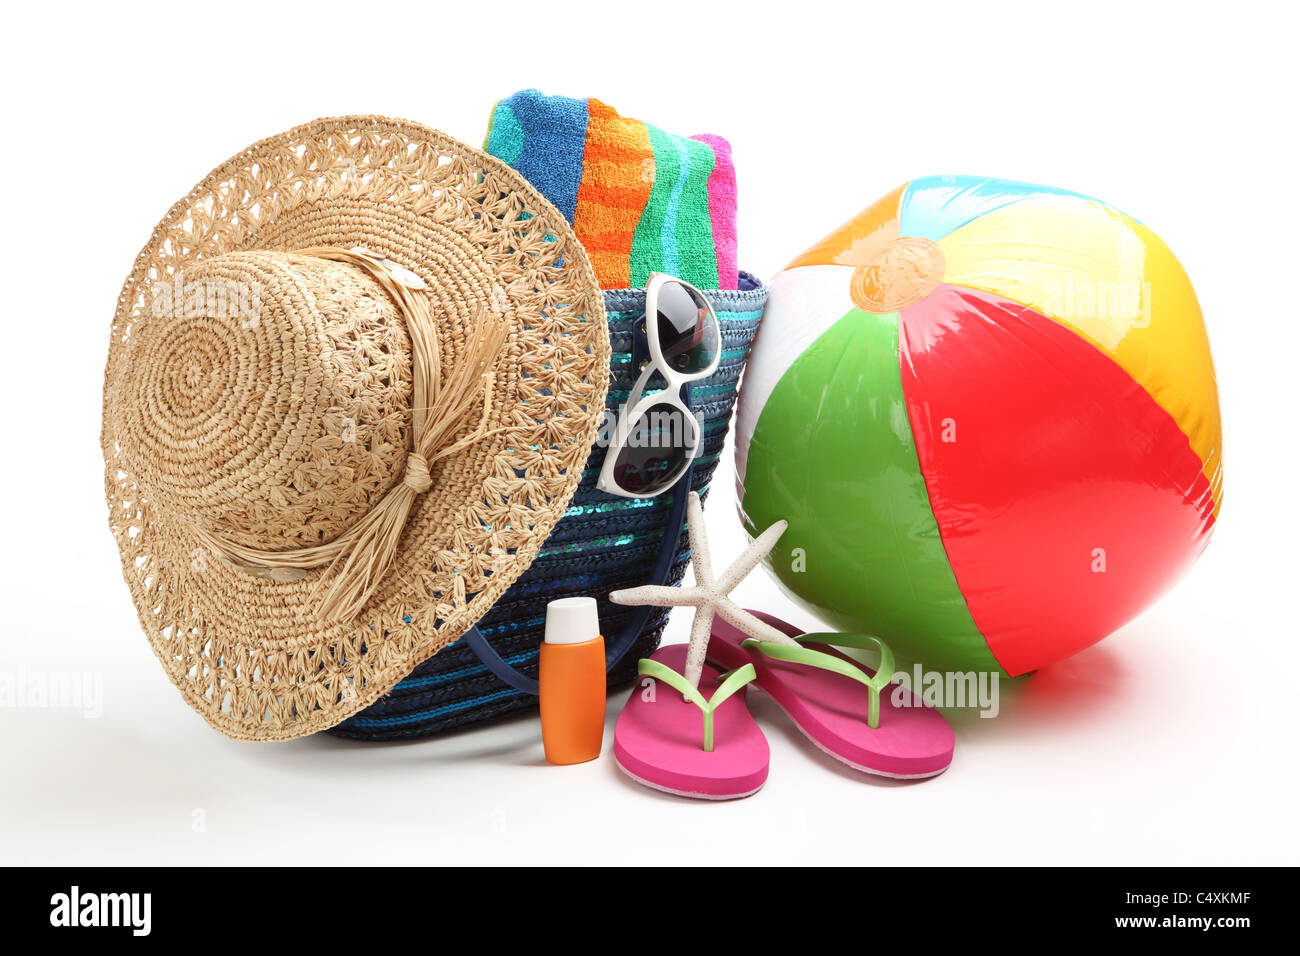 Beach items with straw hat,towel,flip flops,sunblock,beach ball and sunglasses. - Stock Image